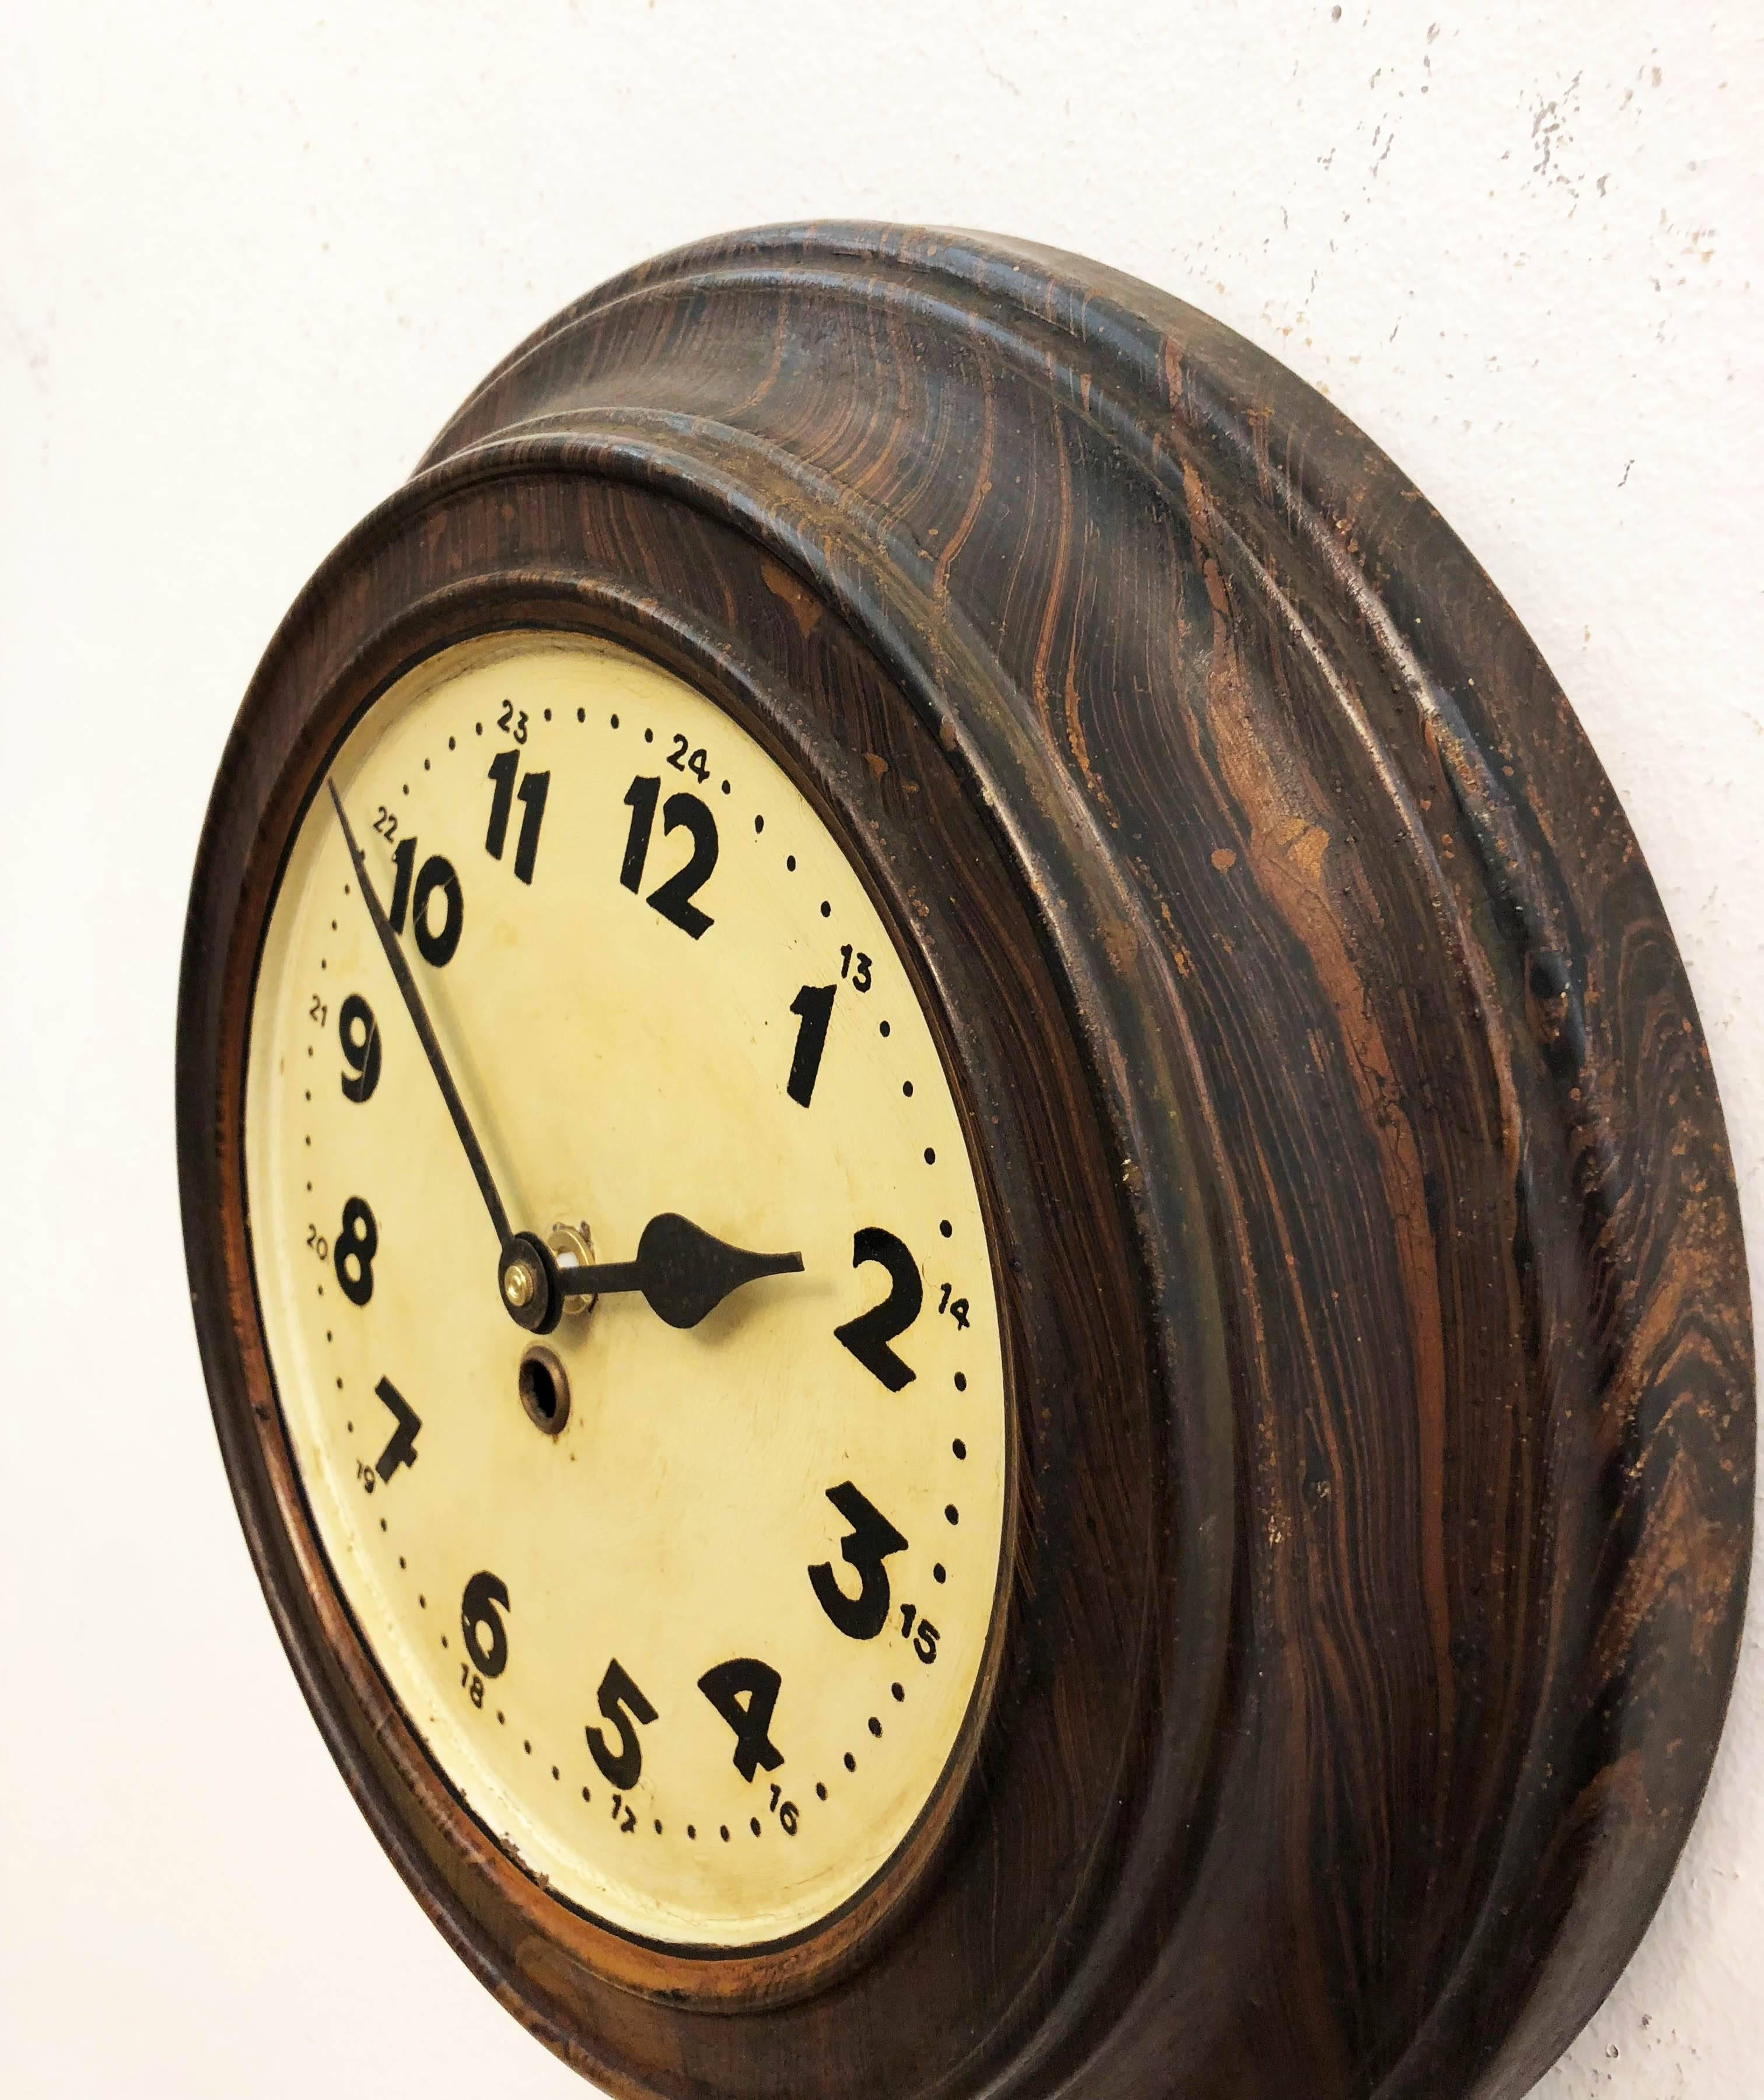 Steel Art Deco Wall Clock For Sale at 1stdibs